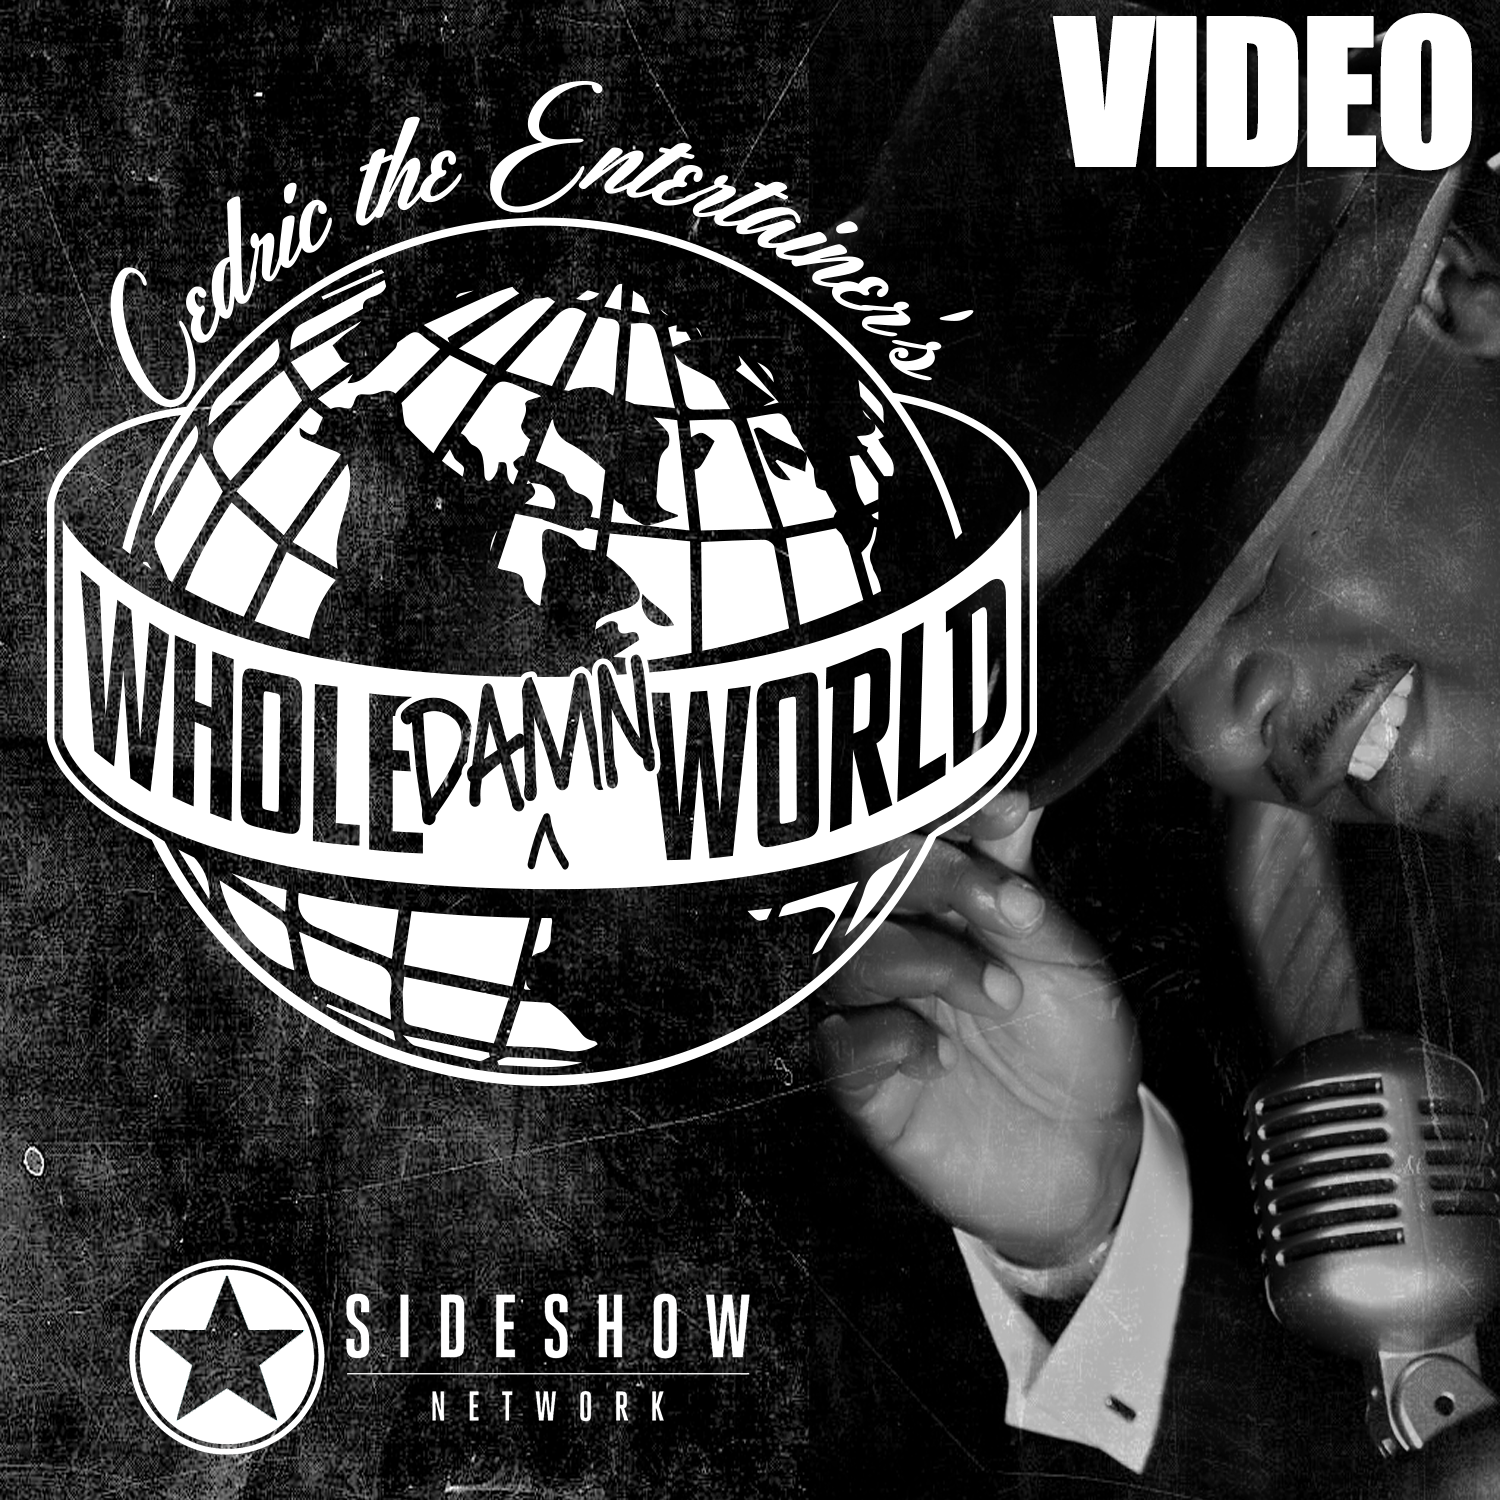 Cedric The Entertainer's Whole Damn World - Video